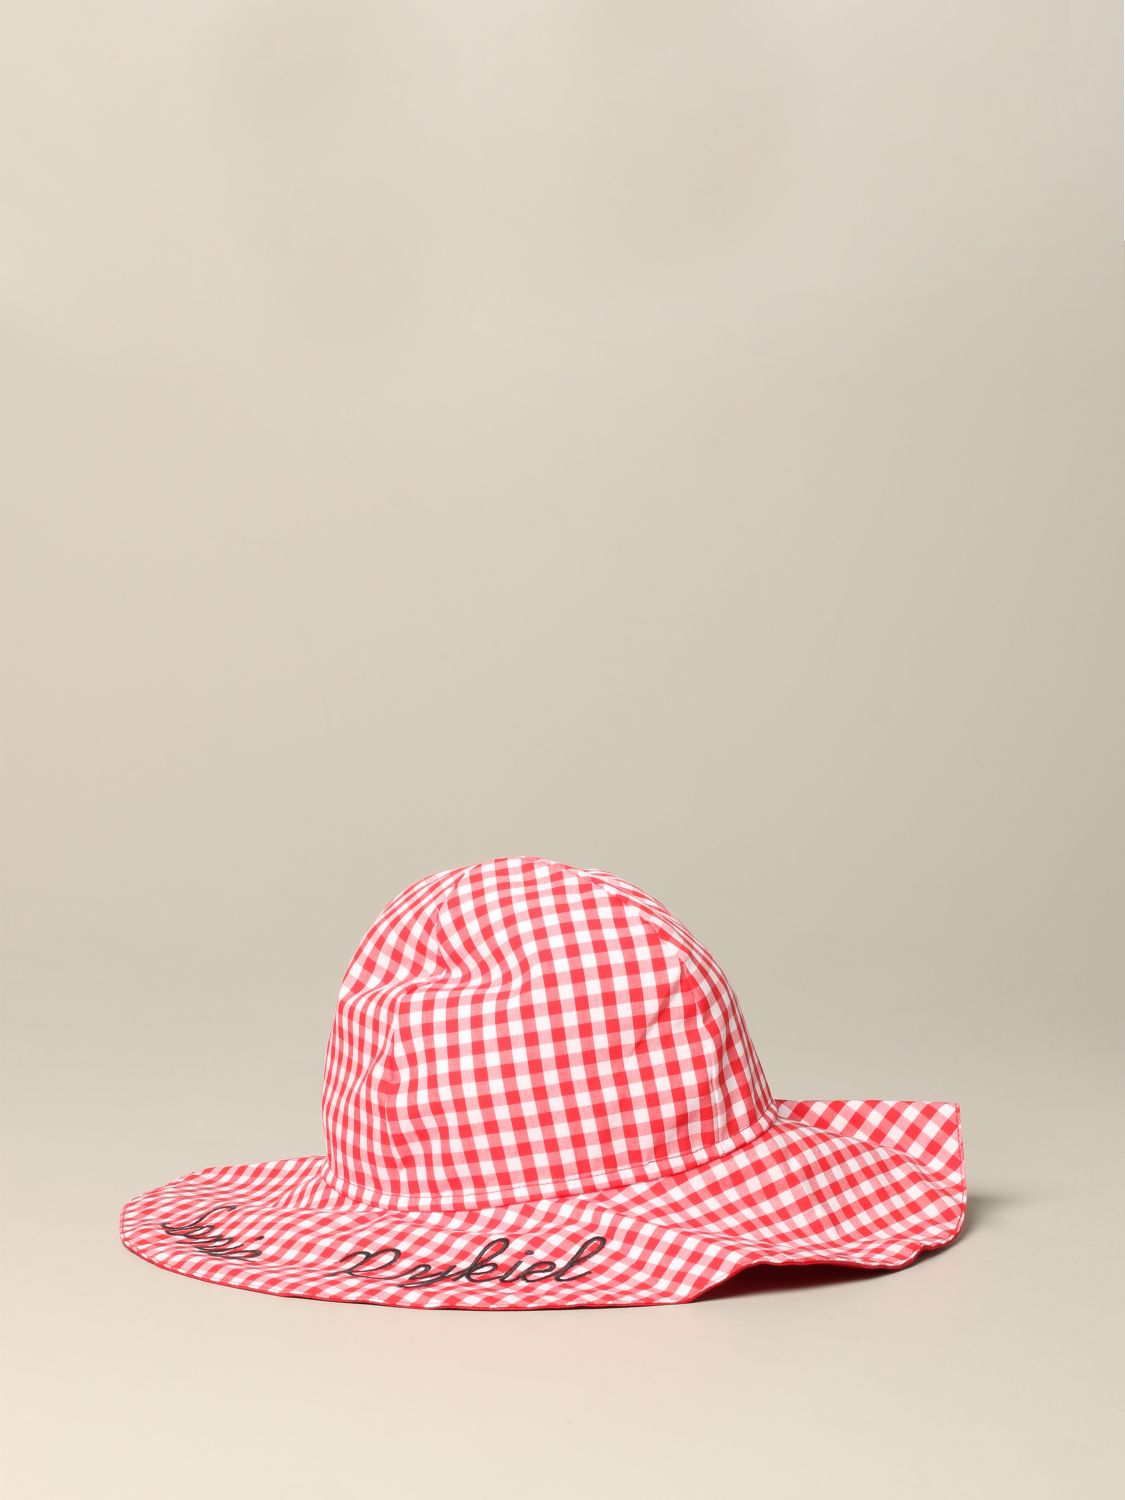 Sonia Rykiel checkered hat with logo red 1